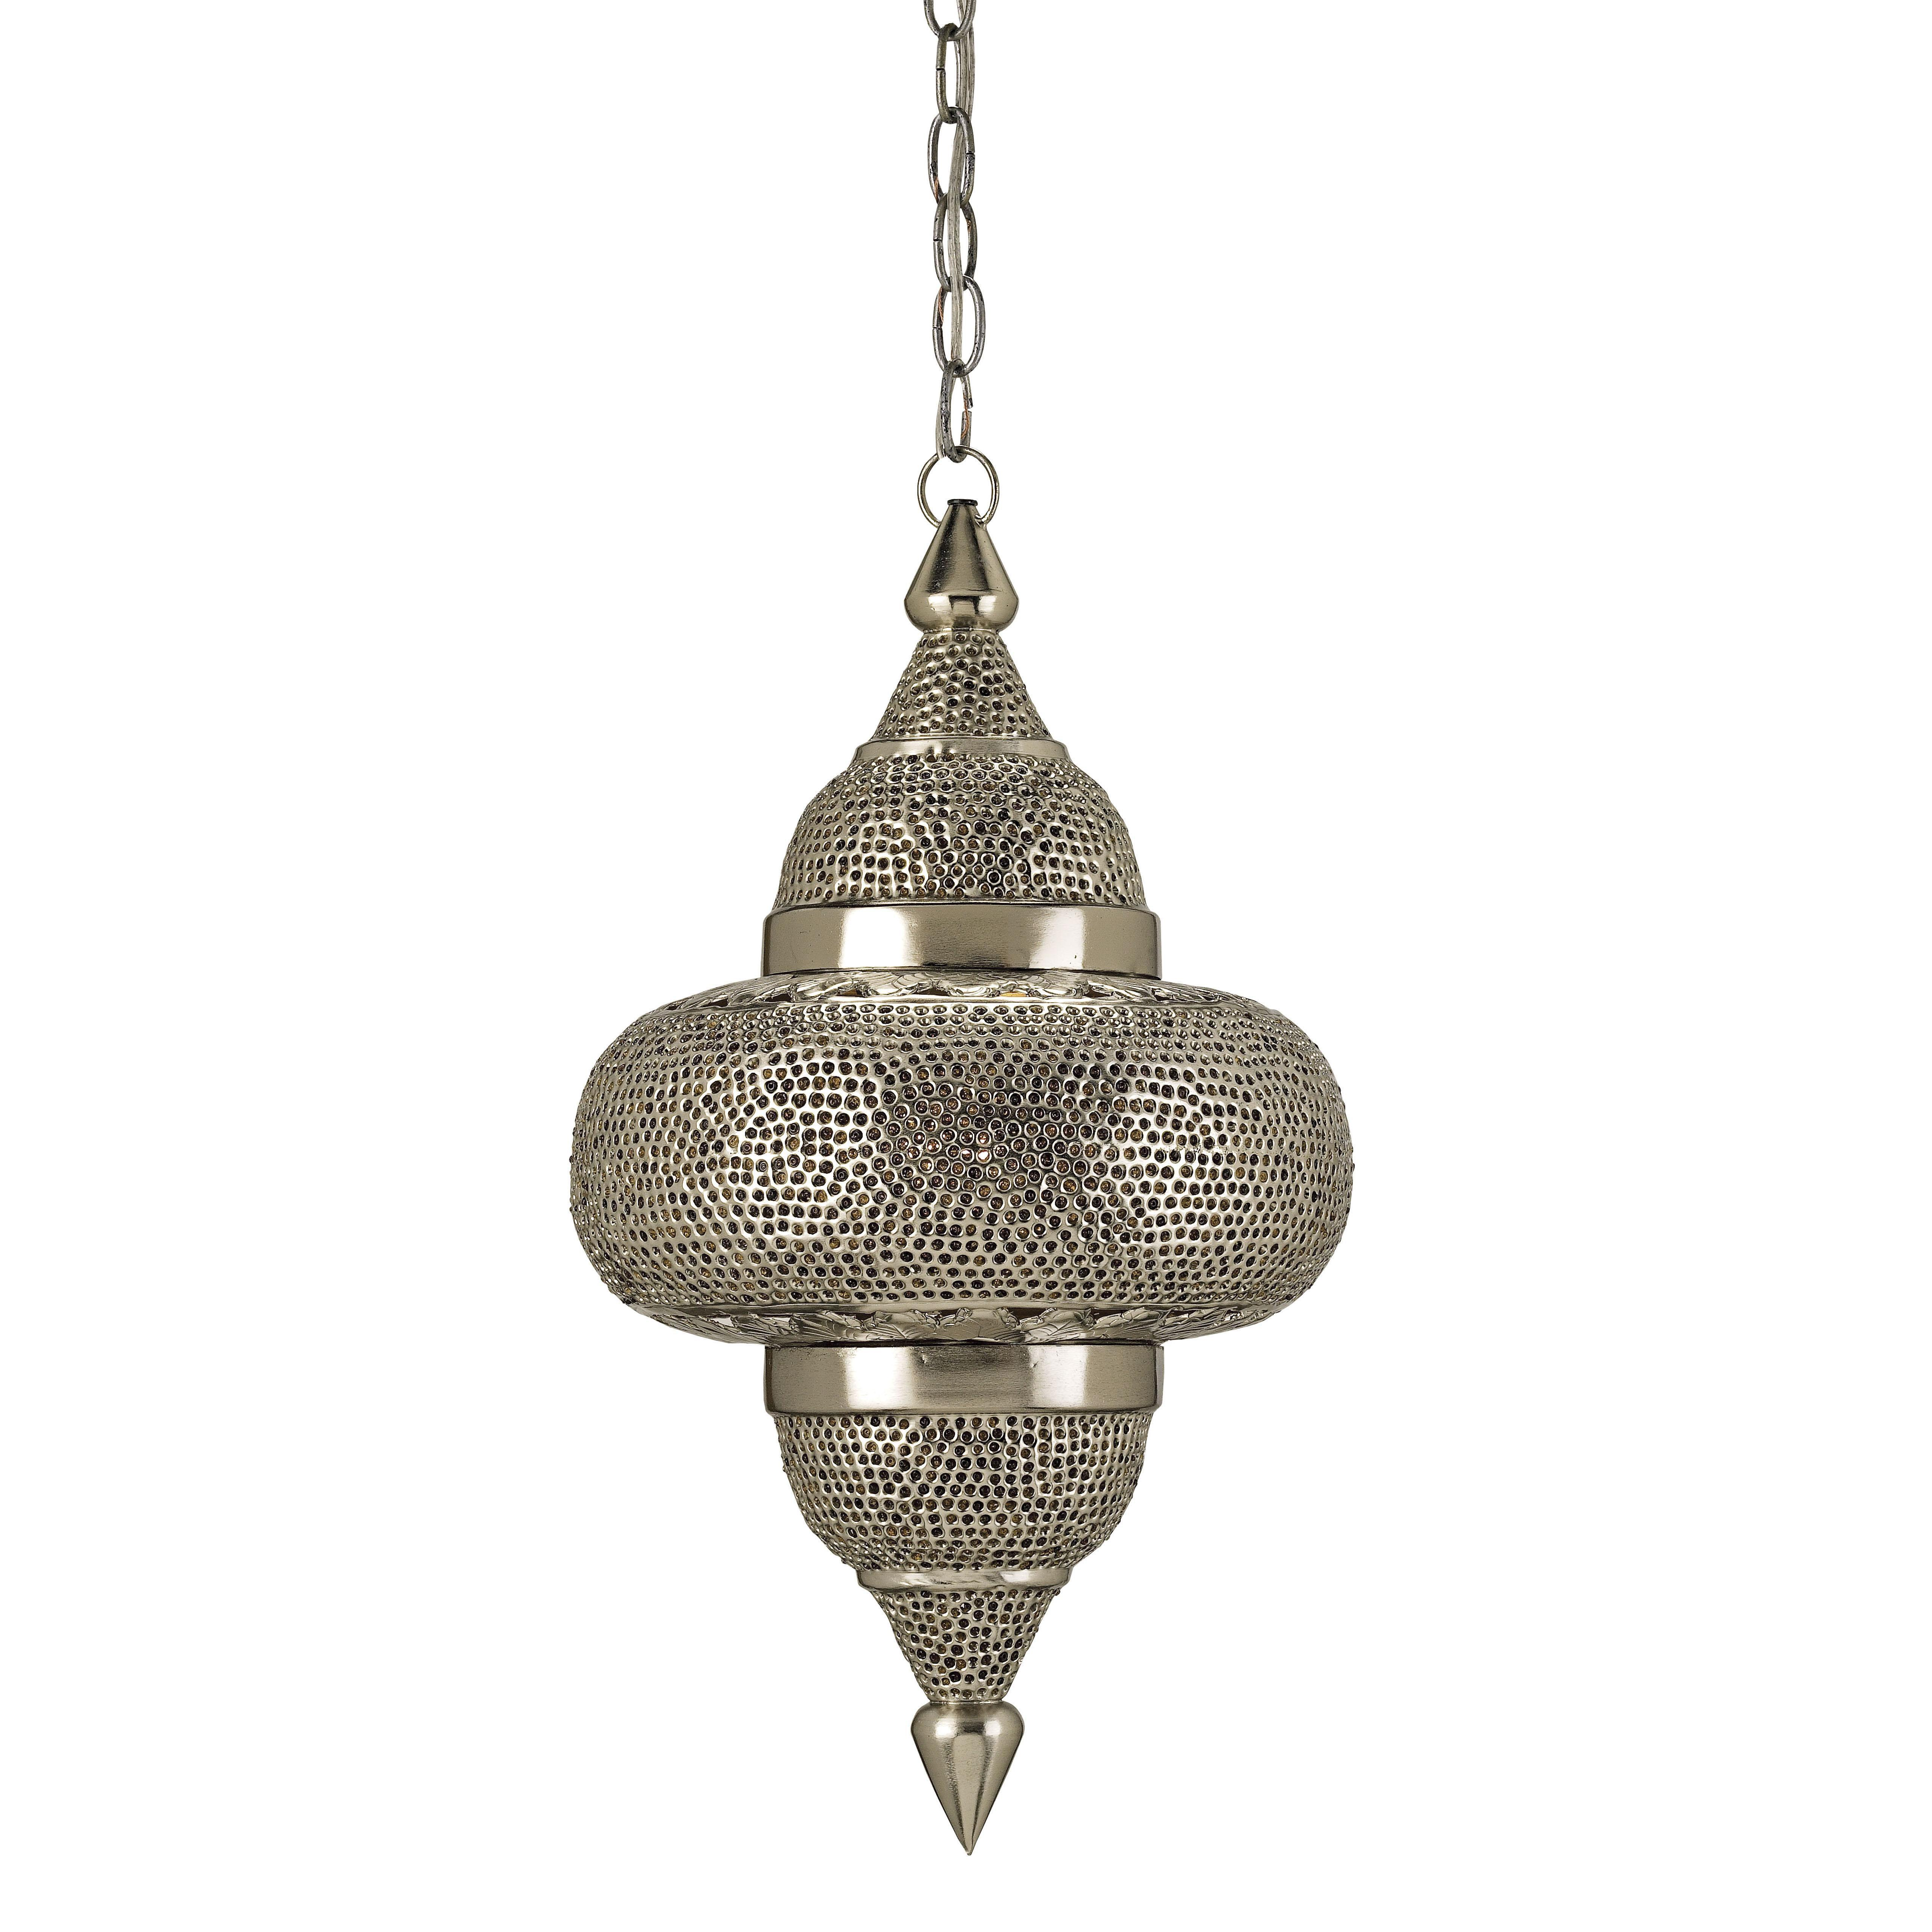 Currey And Company Tangiers Pendant - Currey-co-9103   Candelabra, Inc.